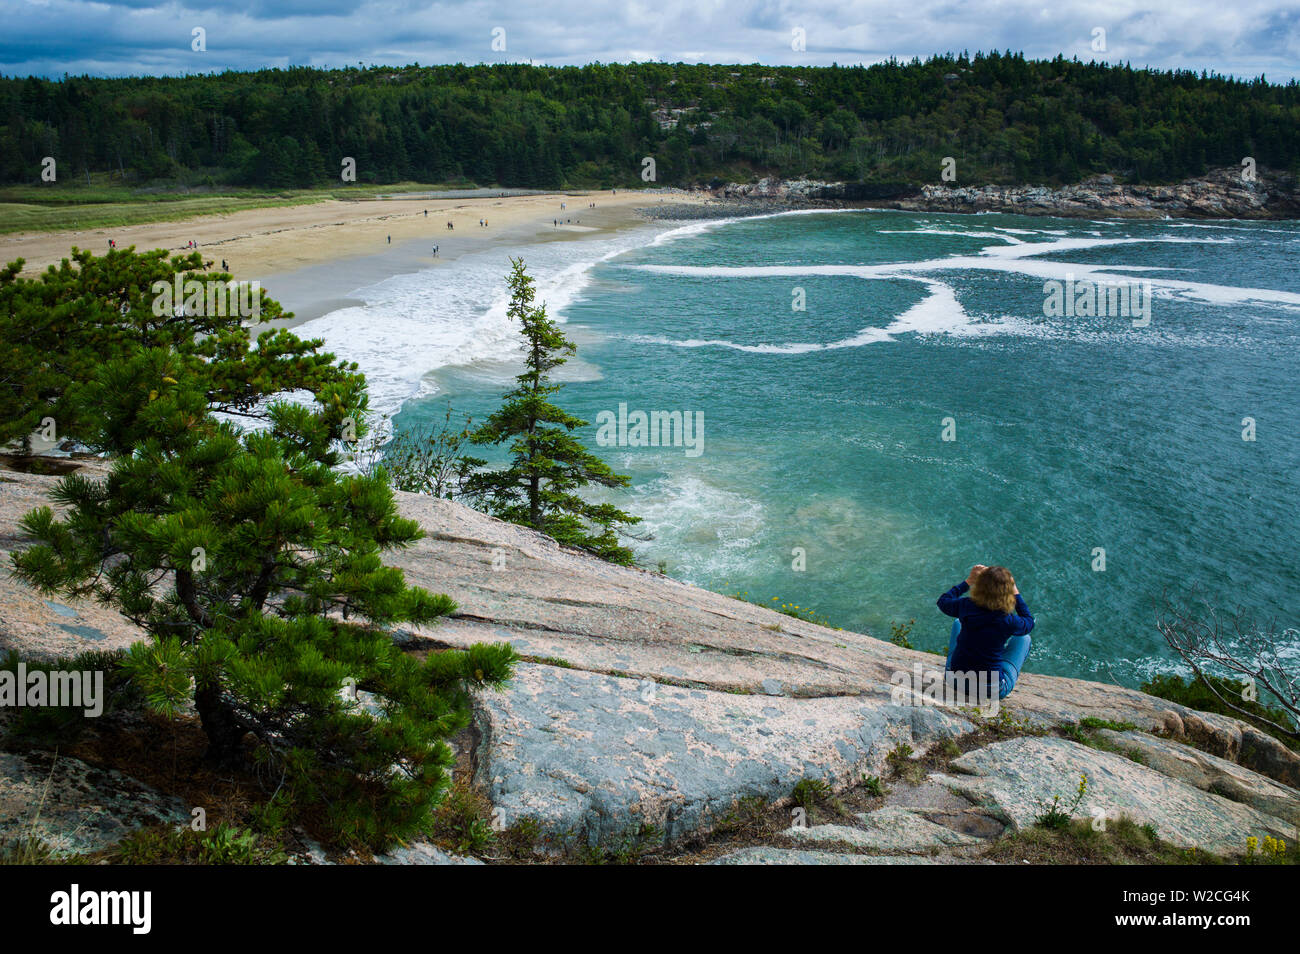 USA, Maine, Mt. Desert Island, Acadia National Park, elevated view of Sand Beach - Stock Image